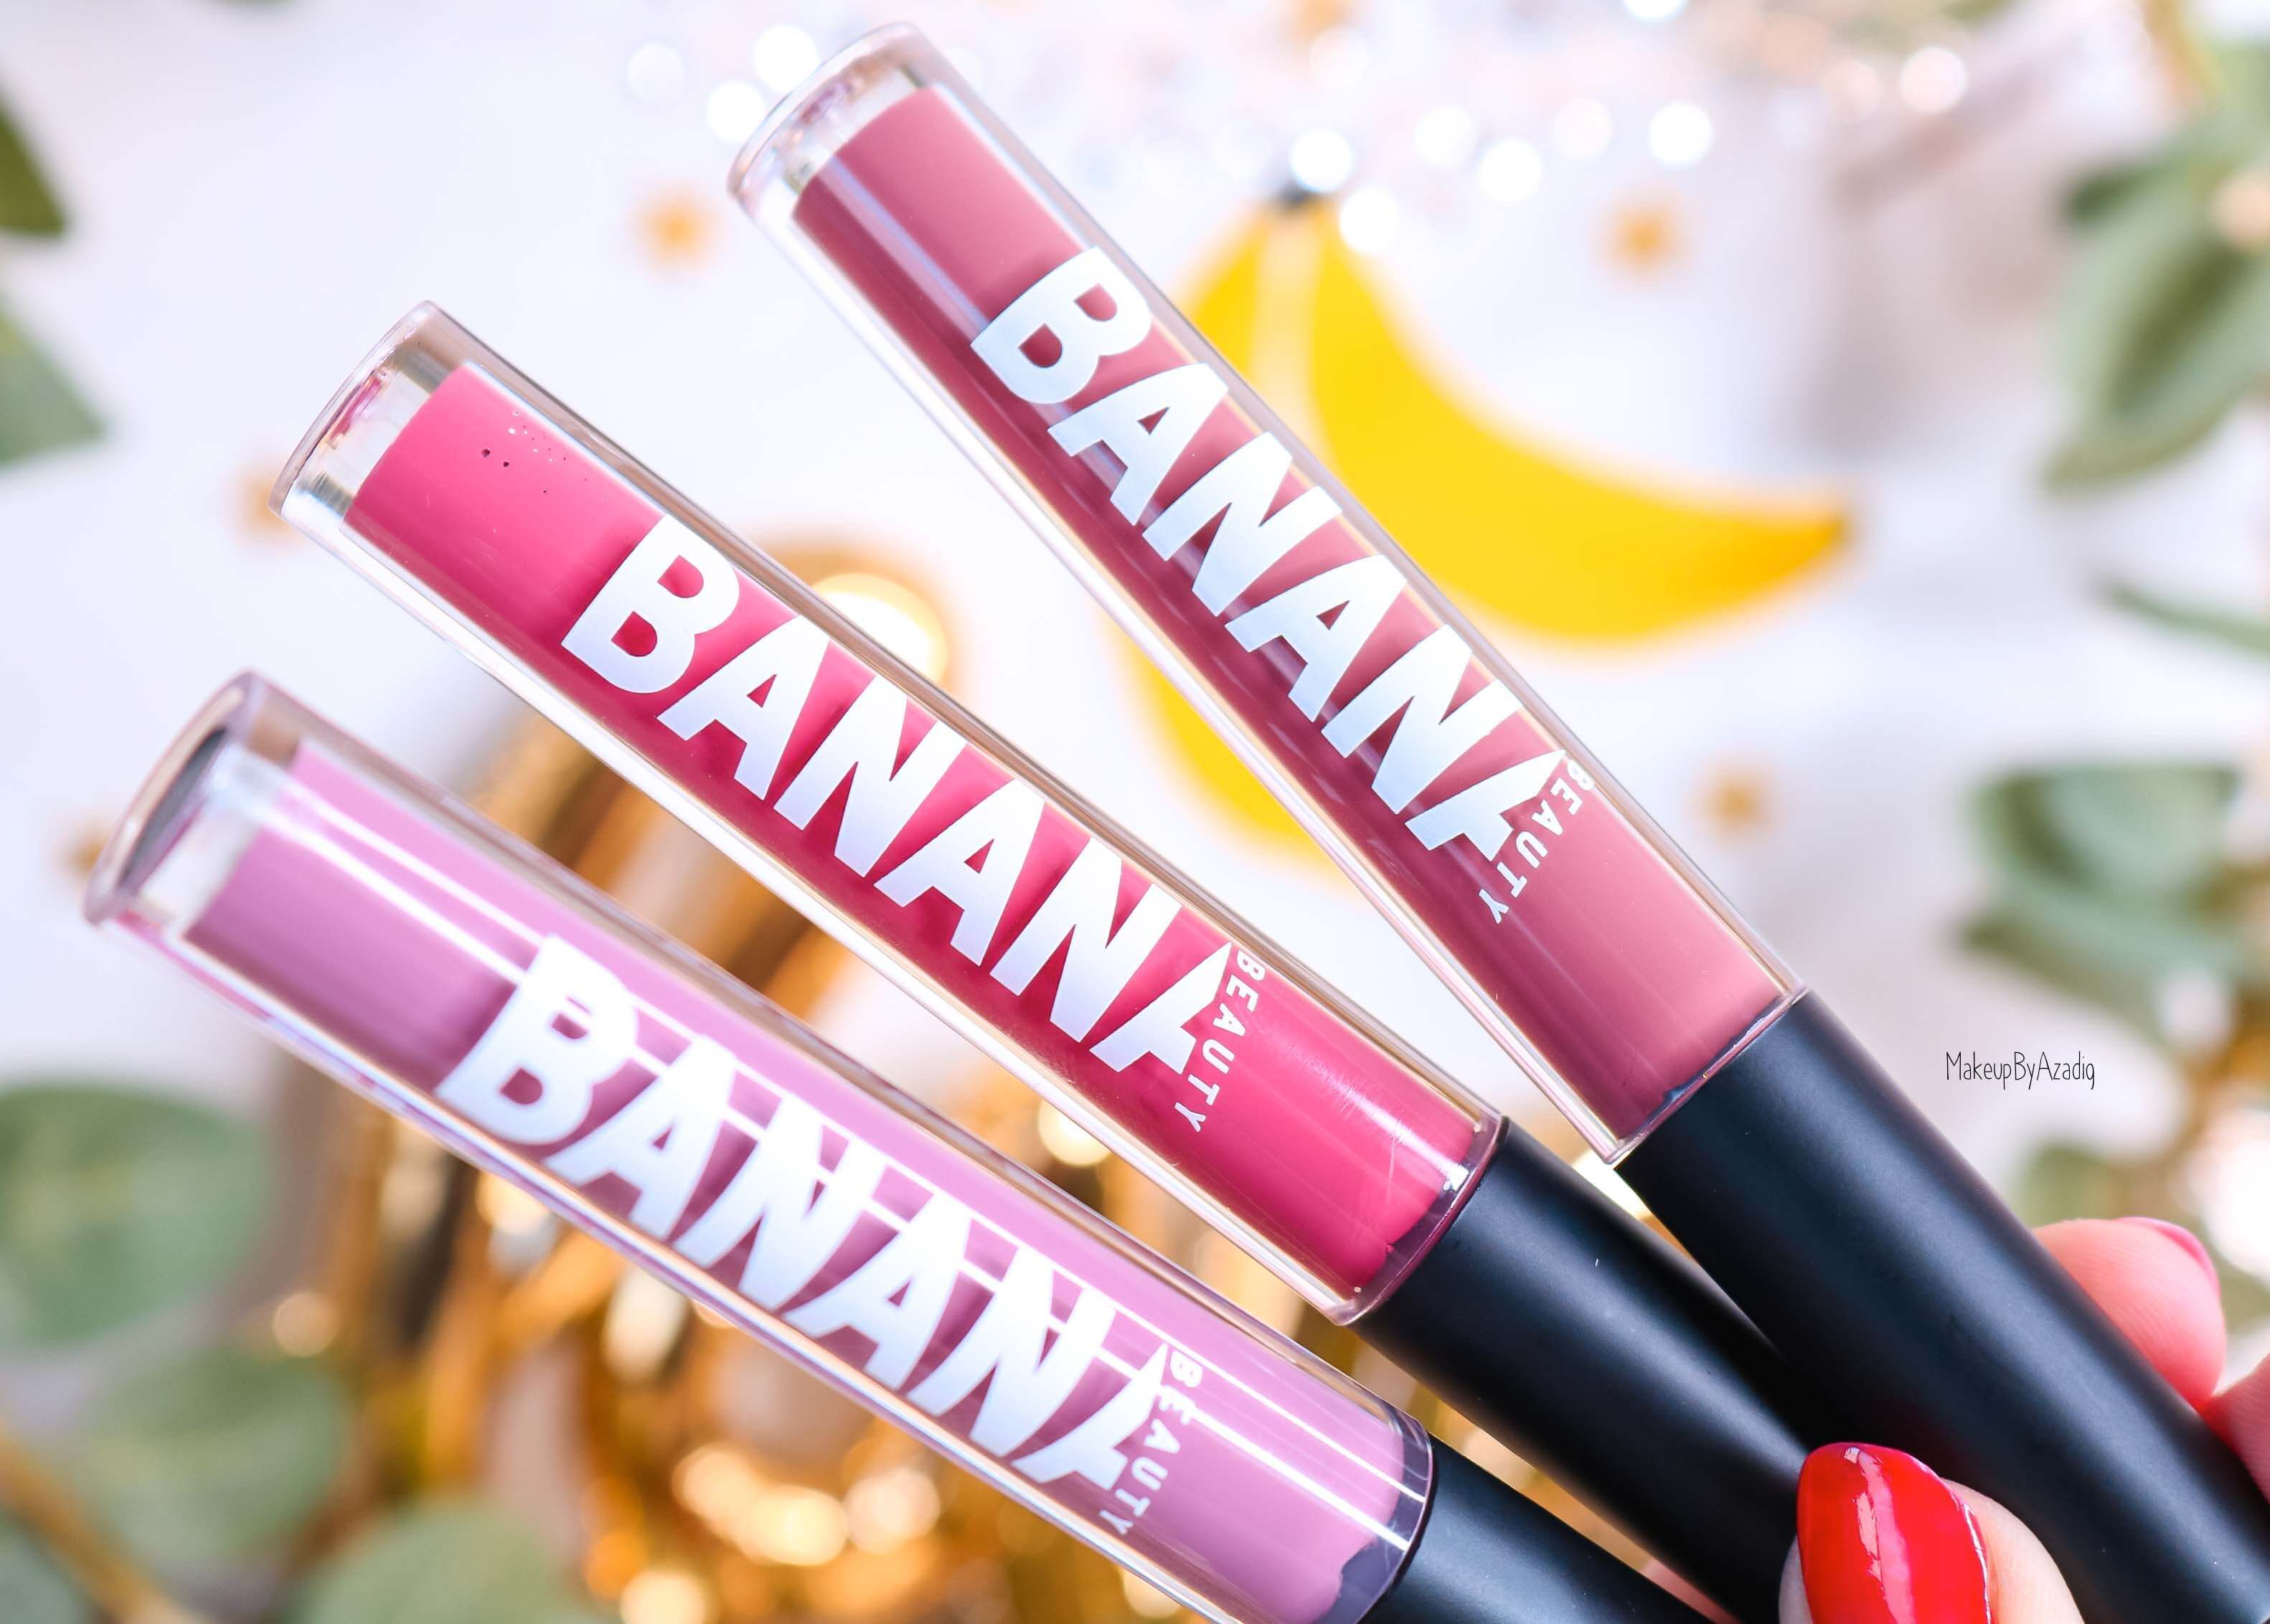 revue-rouge-a-levres-lipstick-banana-beauty-avis-prix-swatch-partenariat-ohlalicious-lady-licious-heels-up-makeupbyazadig-nude-collector-code-promo-zoom